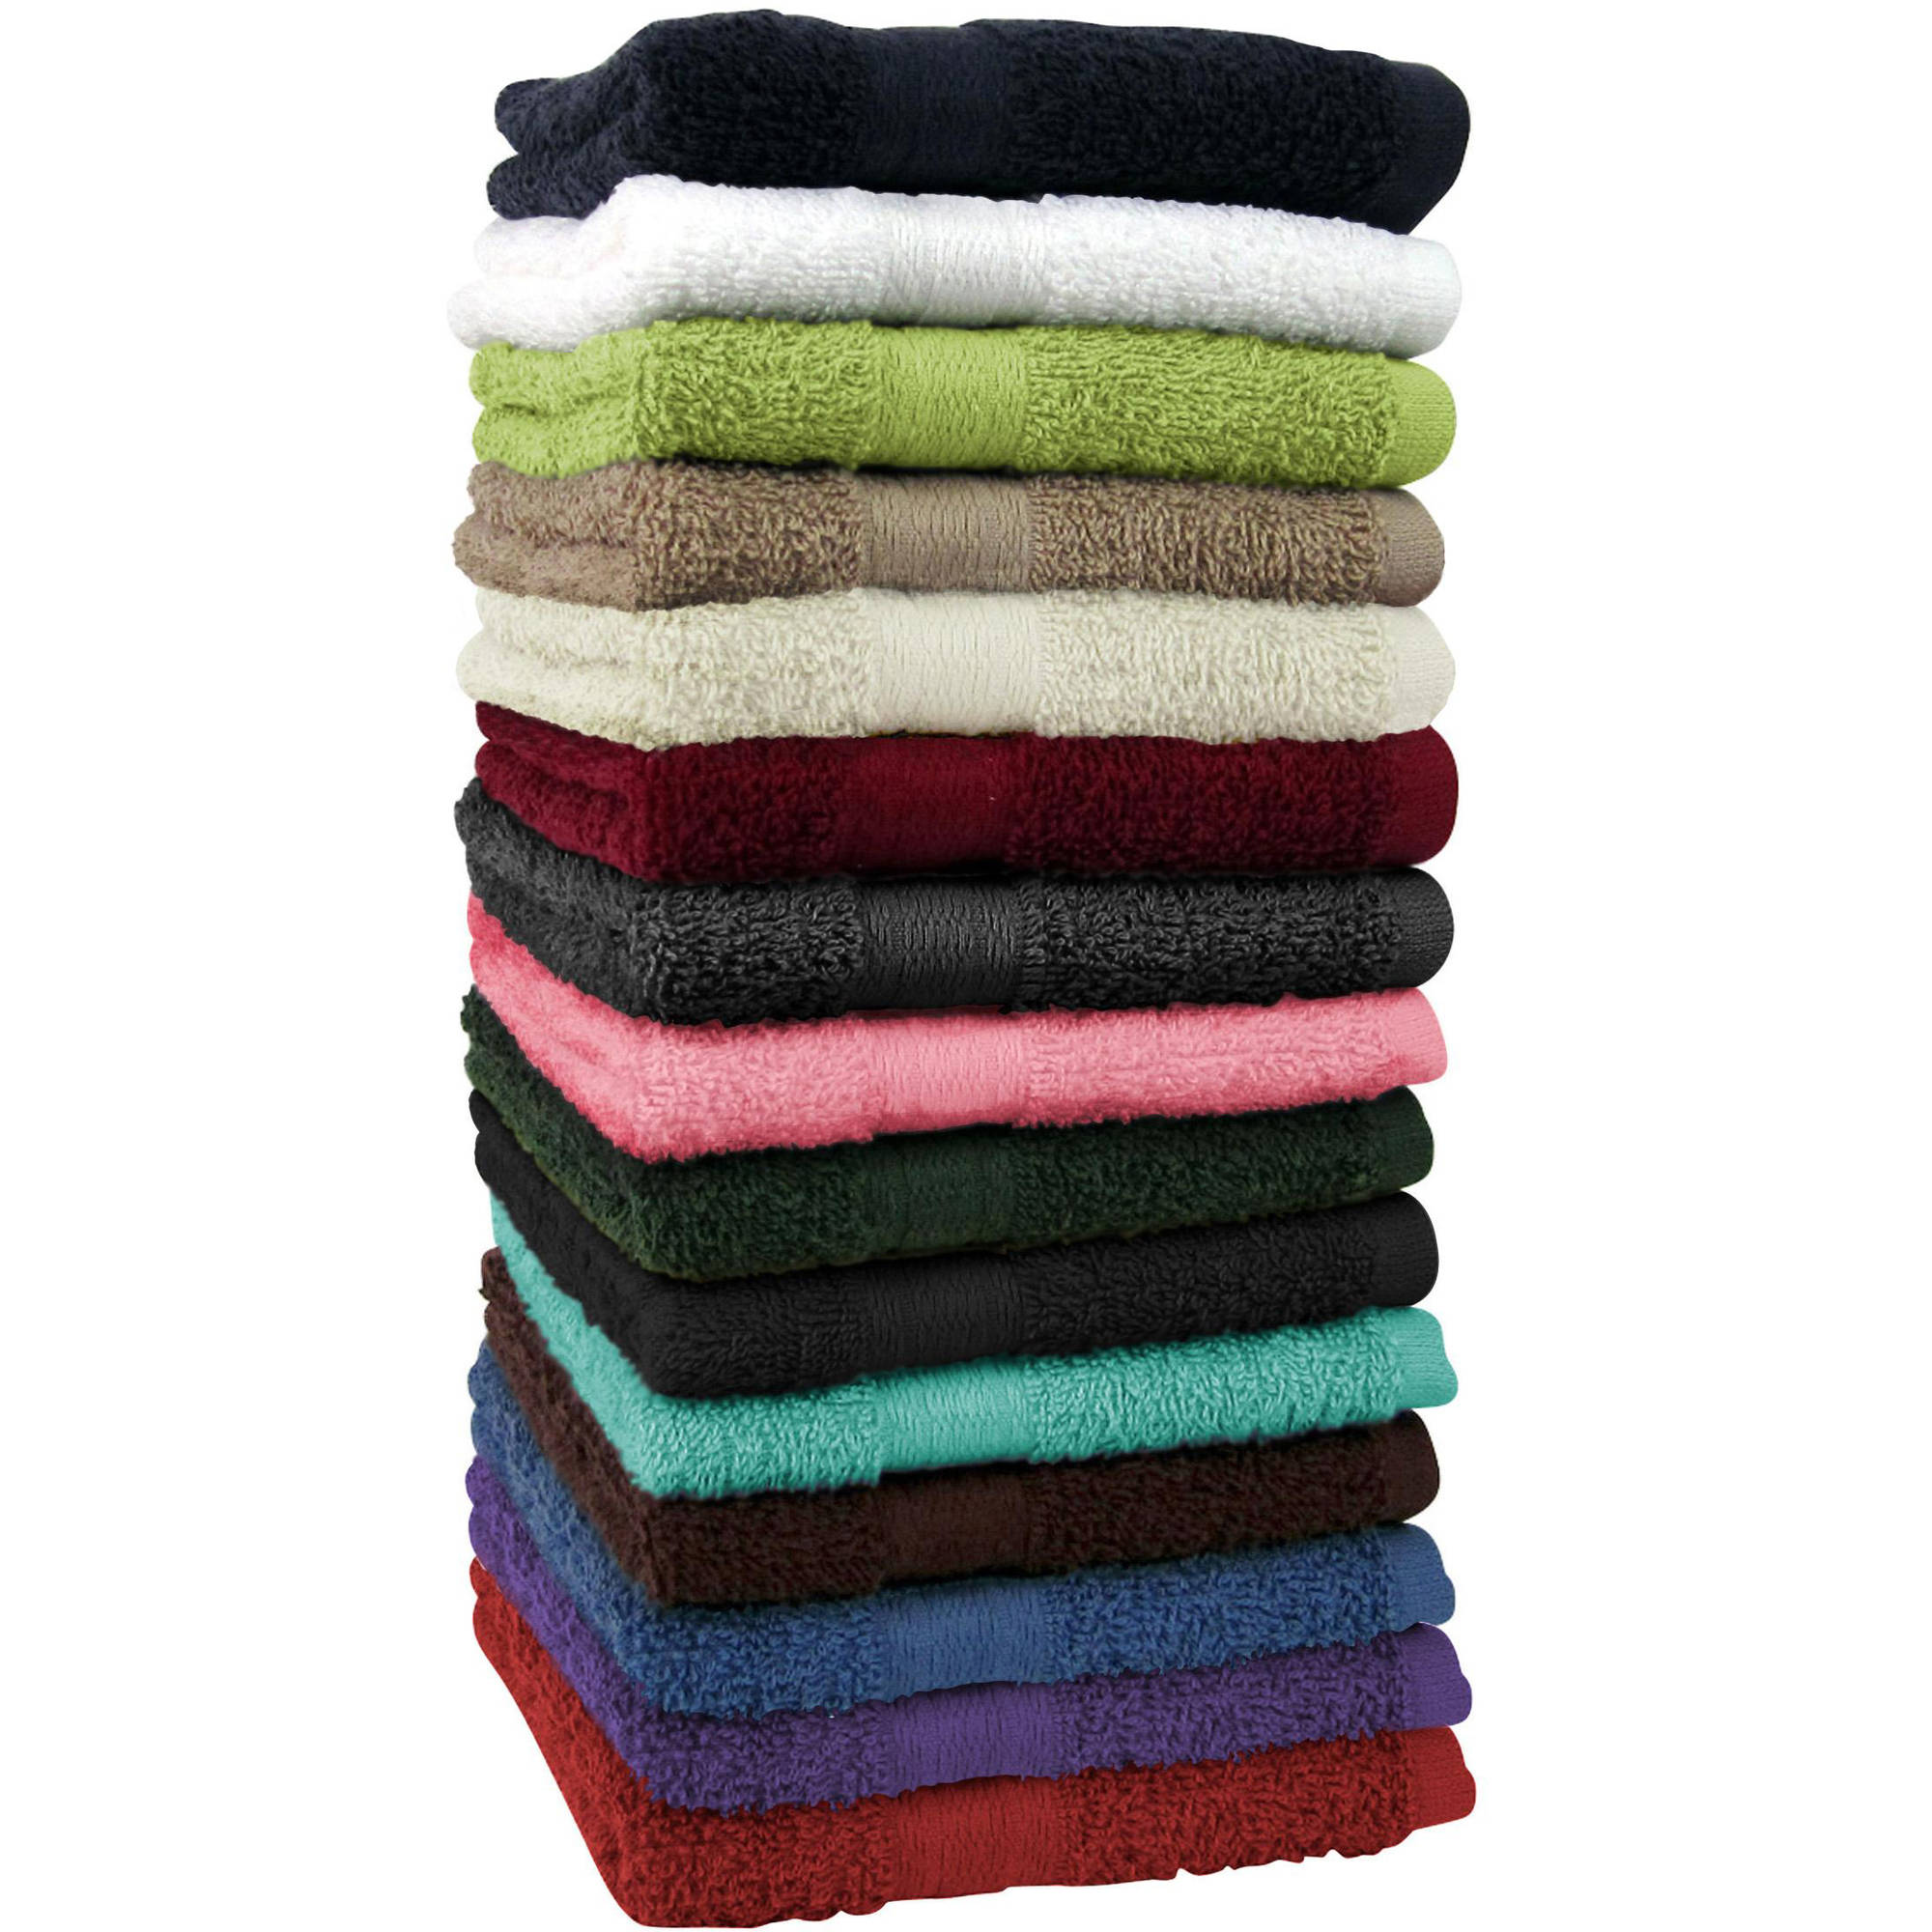 Mainstays Basic Bath Towel Collection